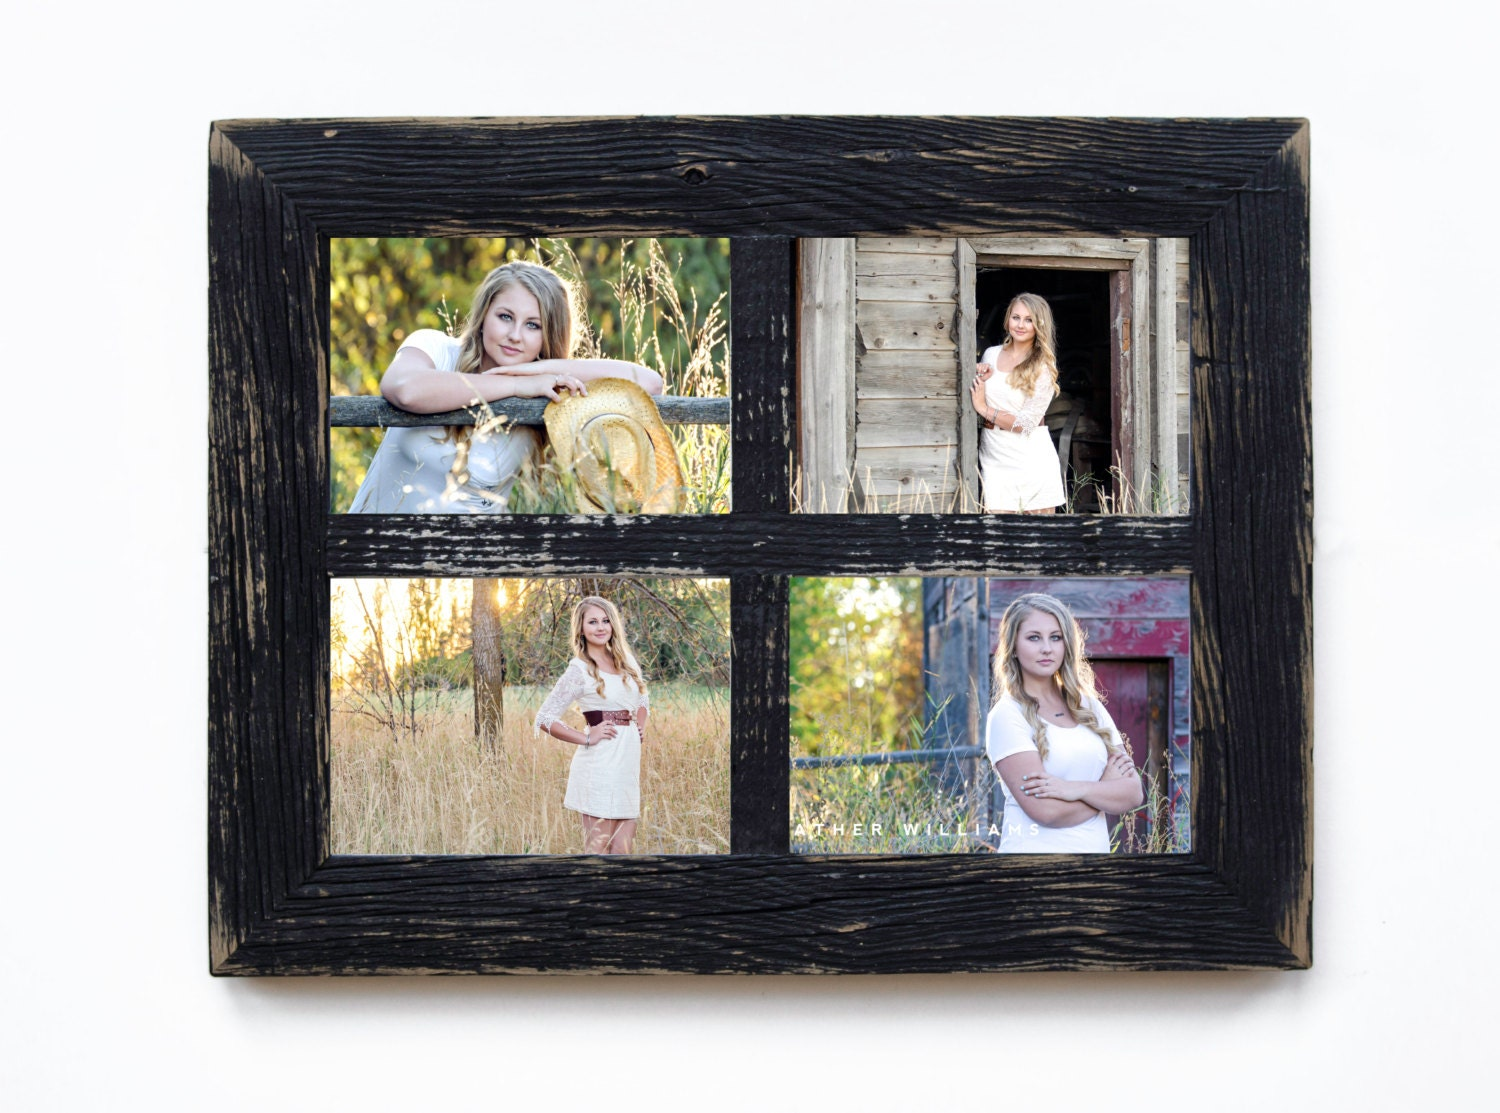 2 Quot 5x7 Barn Window Collage Picture Frame Christmas Gift